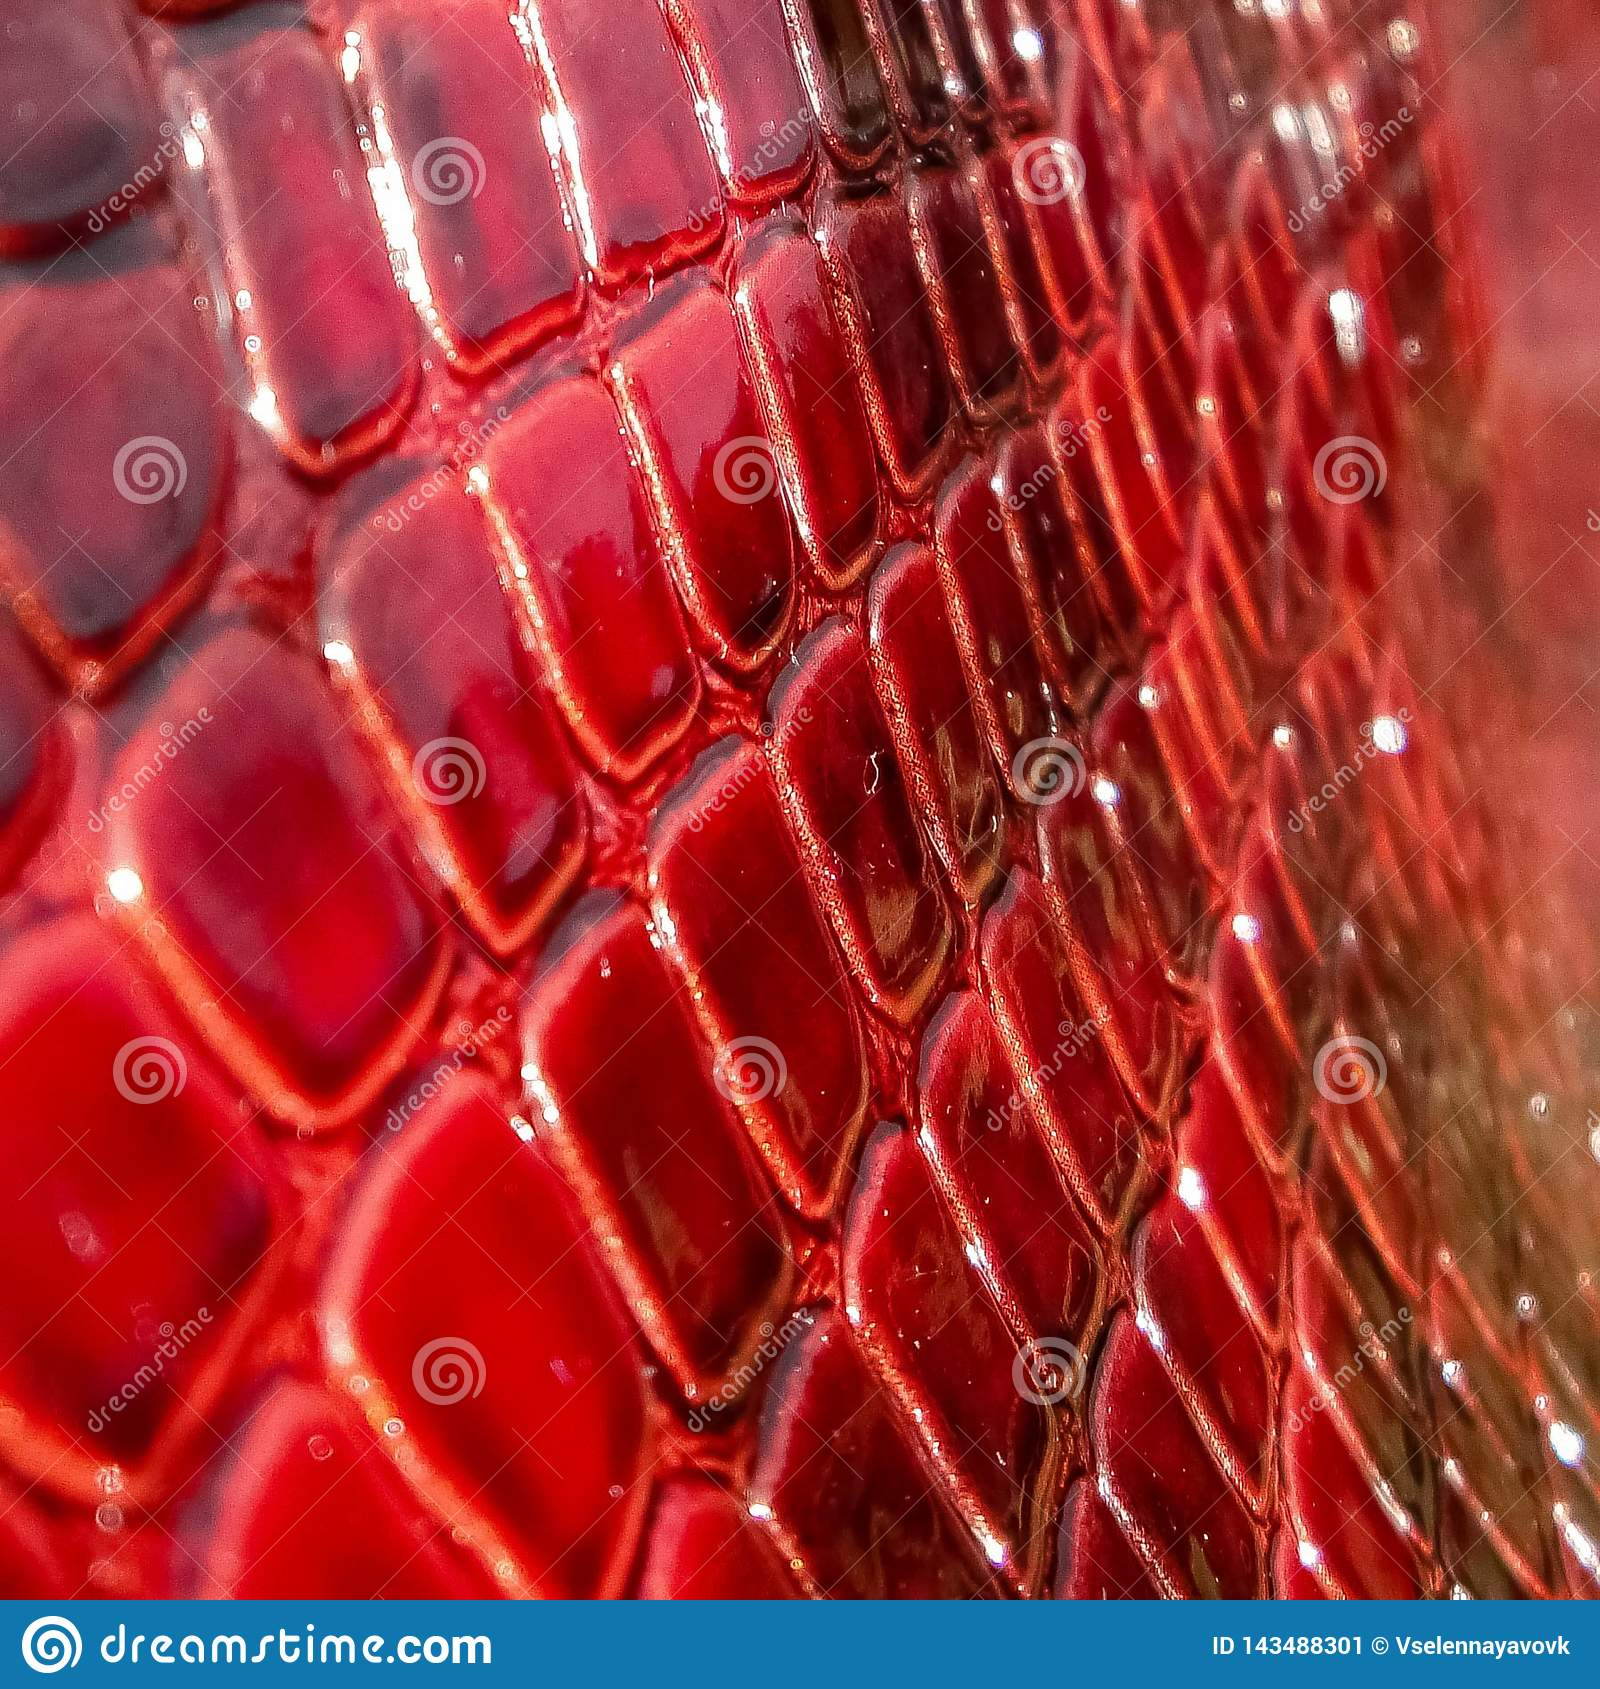 Texture of genuine patent leather close-up, embossed under the skin a red, pink reptile.